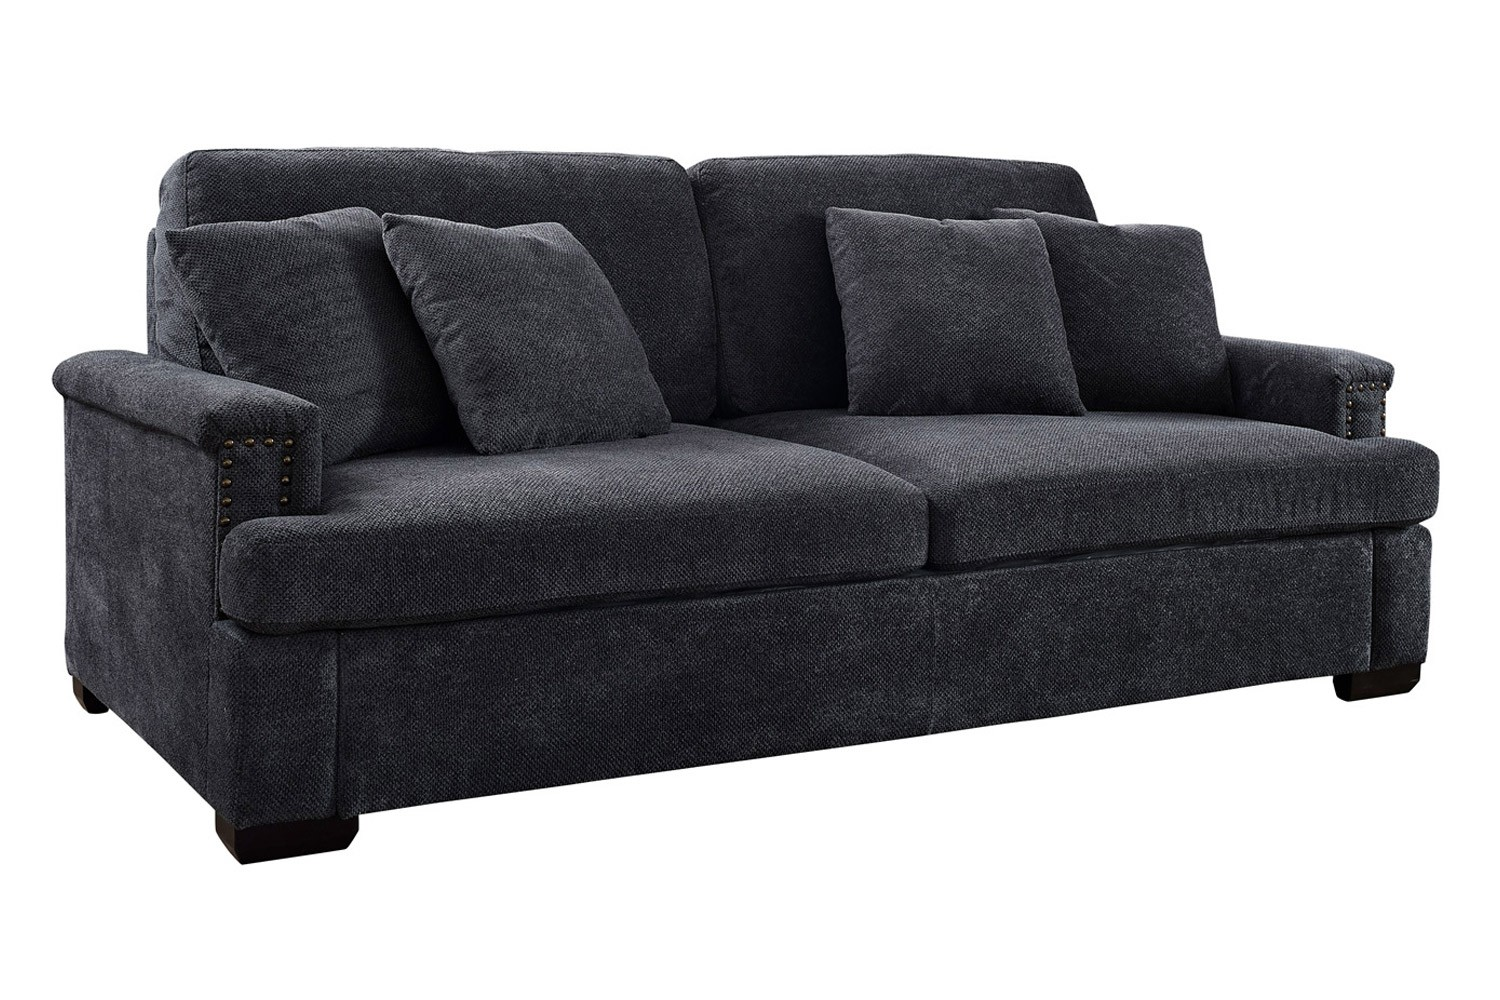 Furniture Village Hartford Sofa Shipping Futons To Illinois Futon Sofa Beds Delivered To